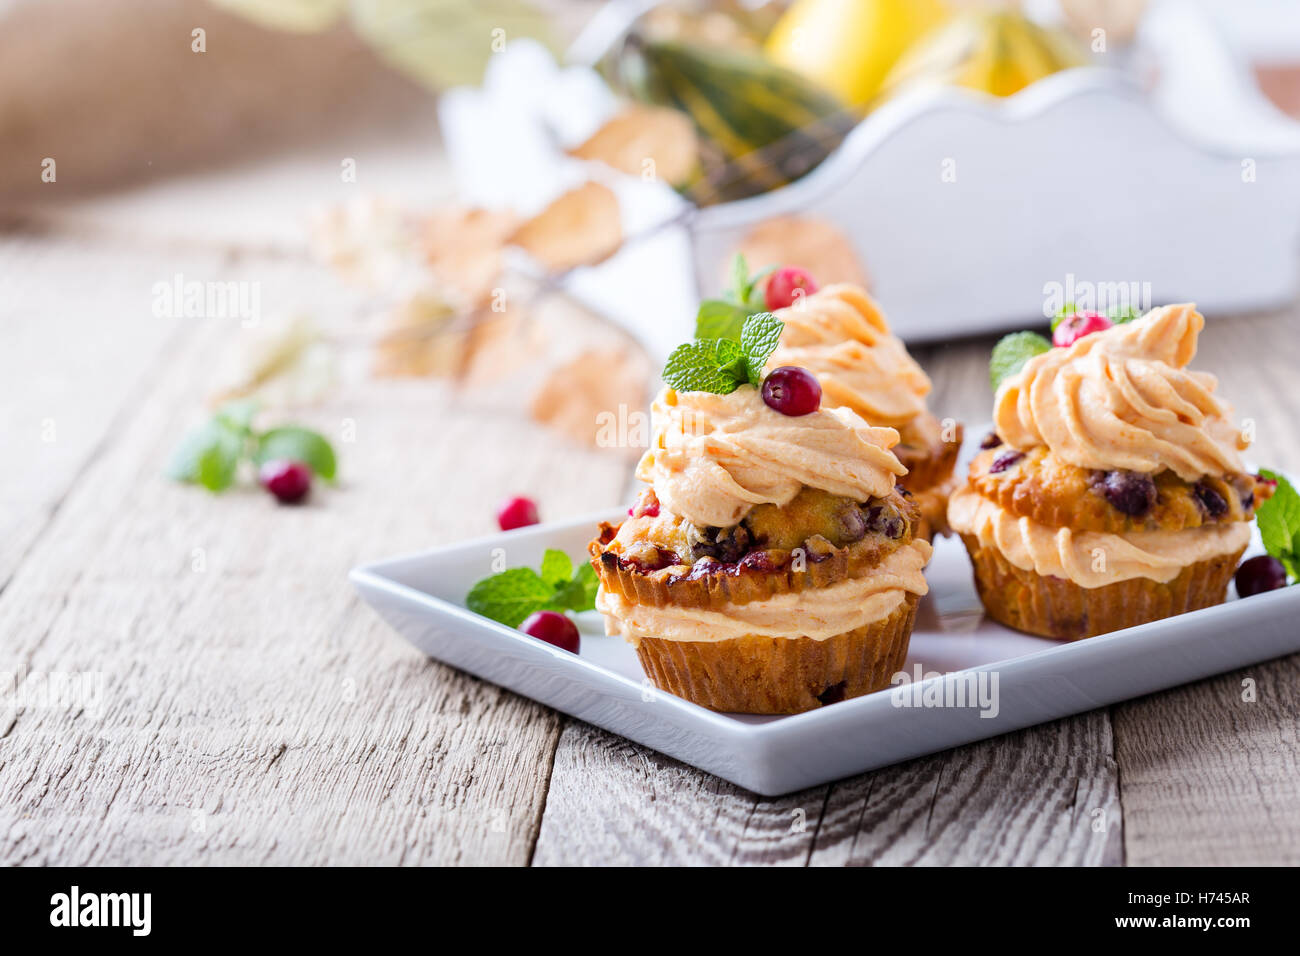 Homemade autumn cranberry pumpkin cupcakes with cream cheese icing on rustic wooden table - Stock Image